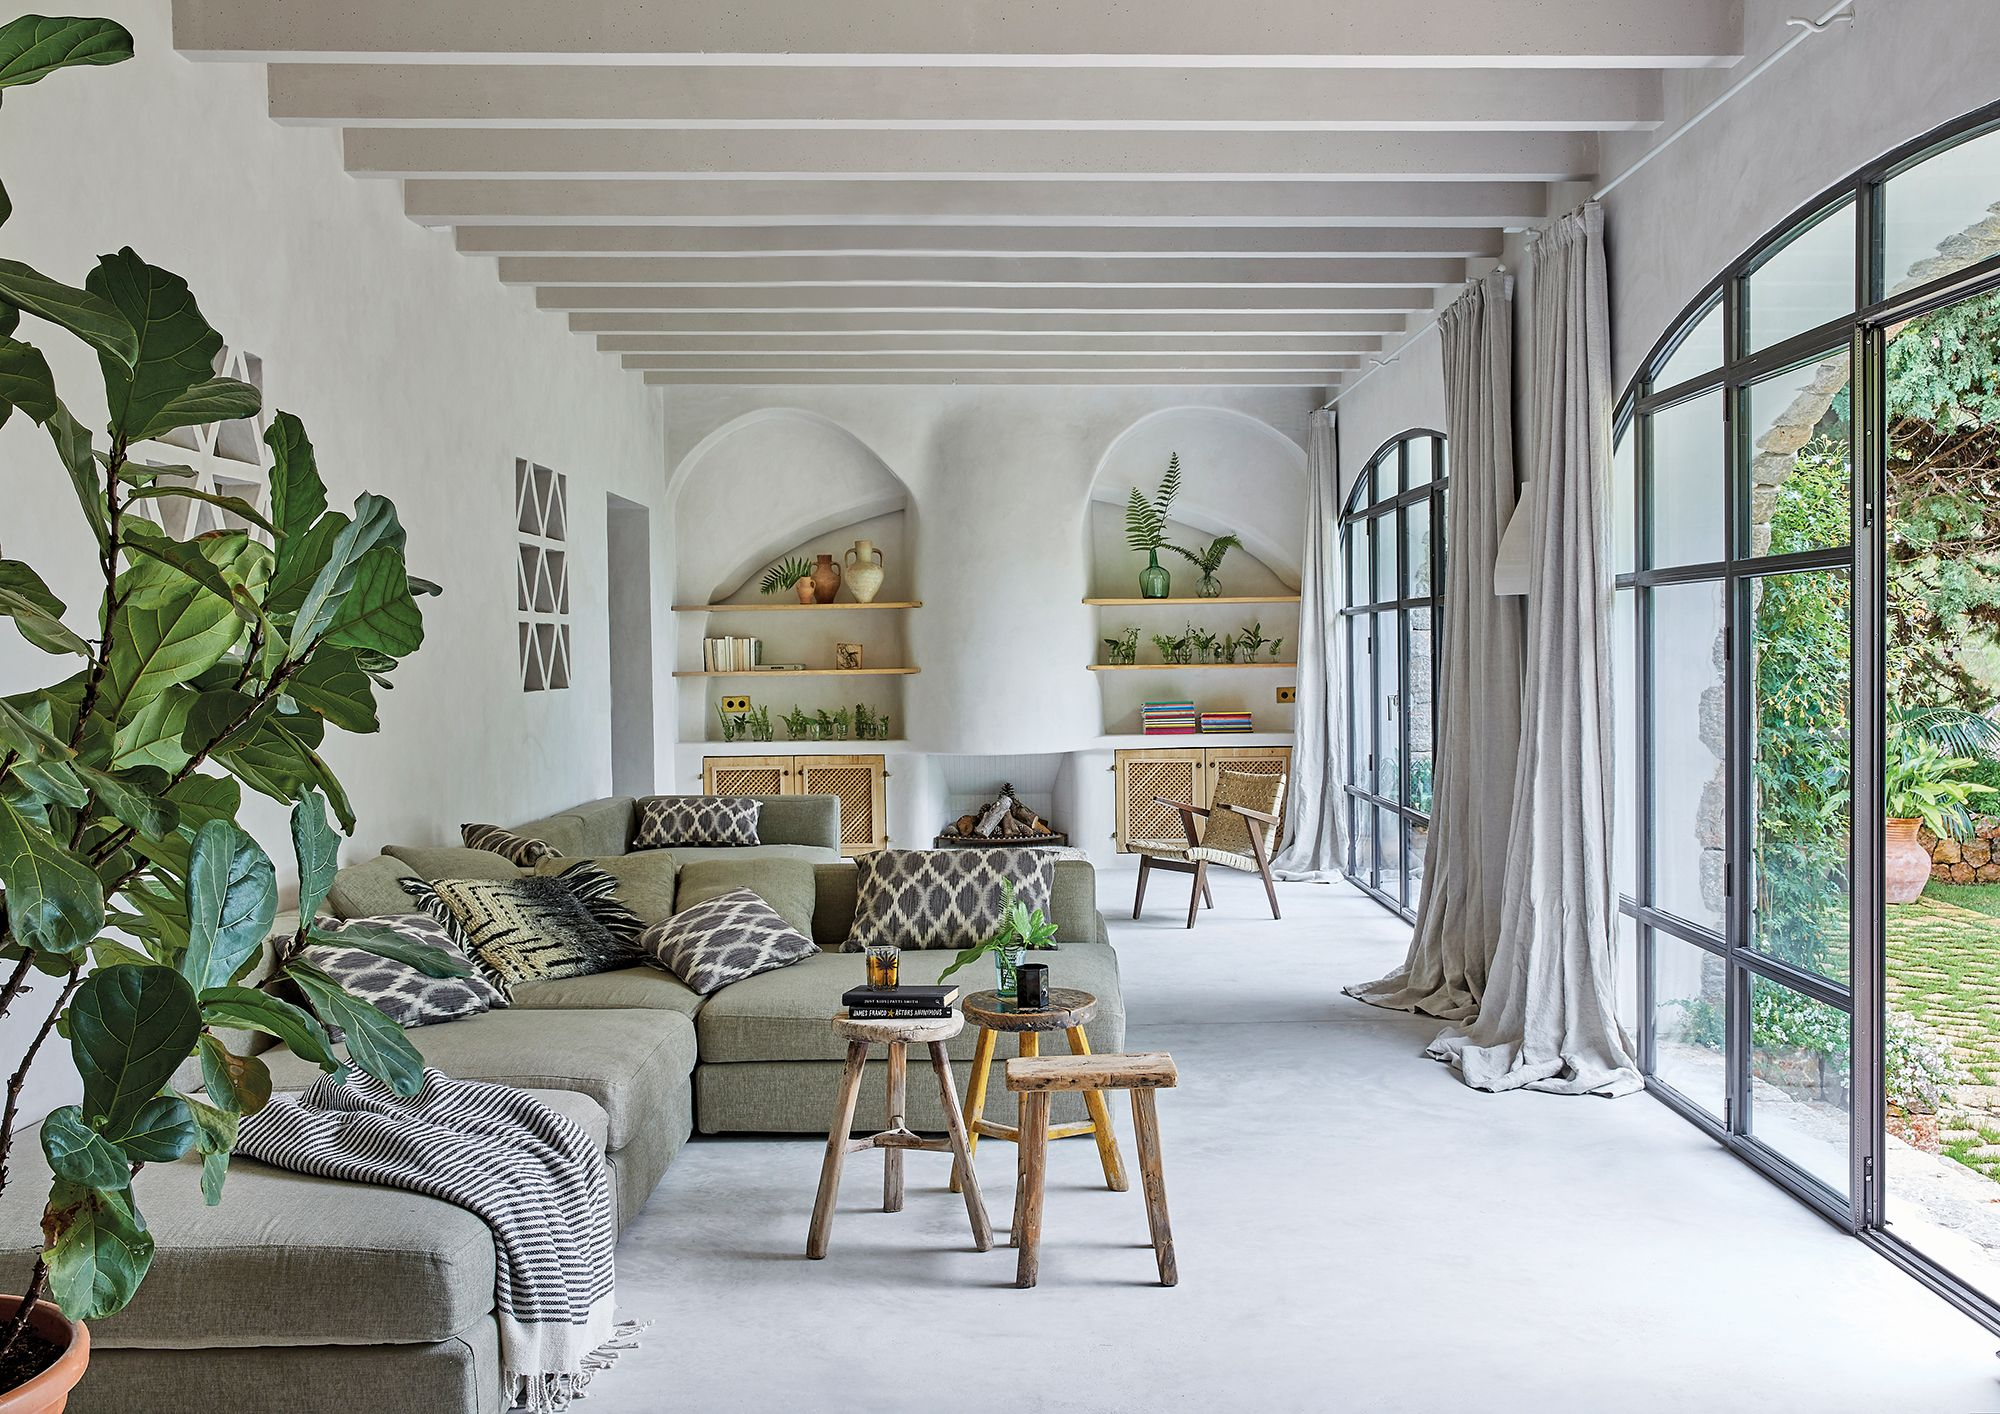 Home Tour: This Idyllic Holiday Home In Mallorca Pairs Modern Minimalism With Rustic Charm